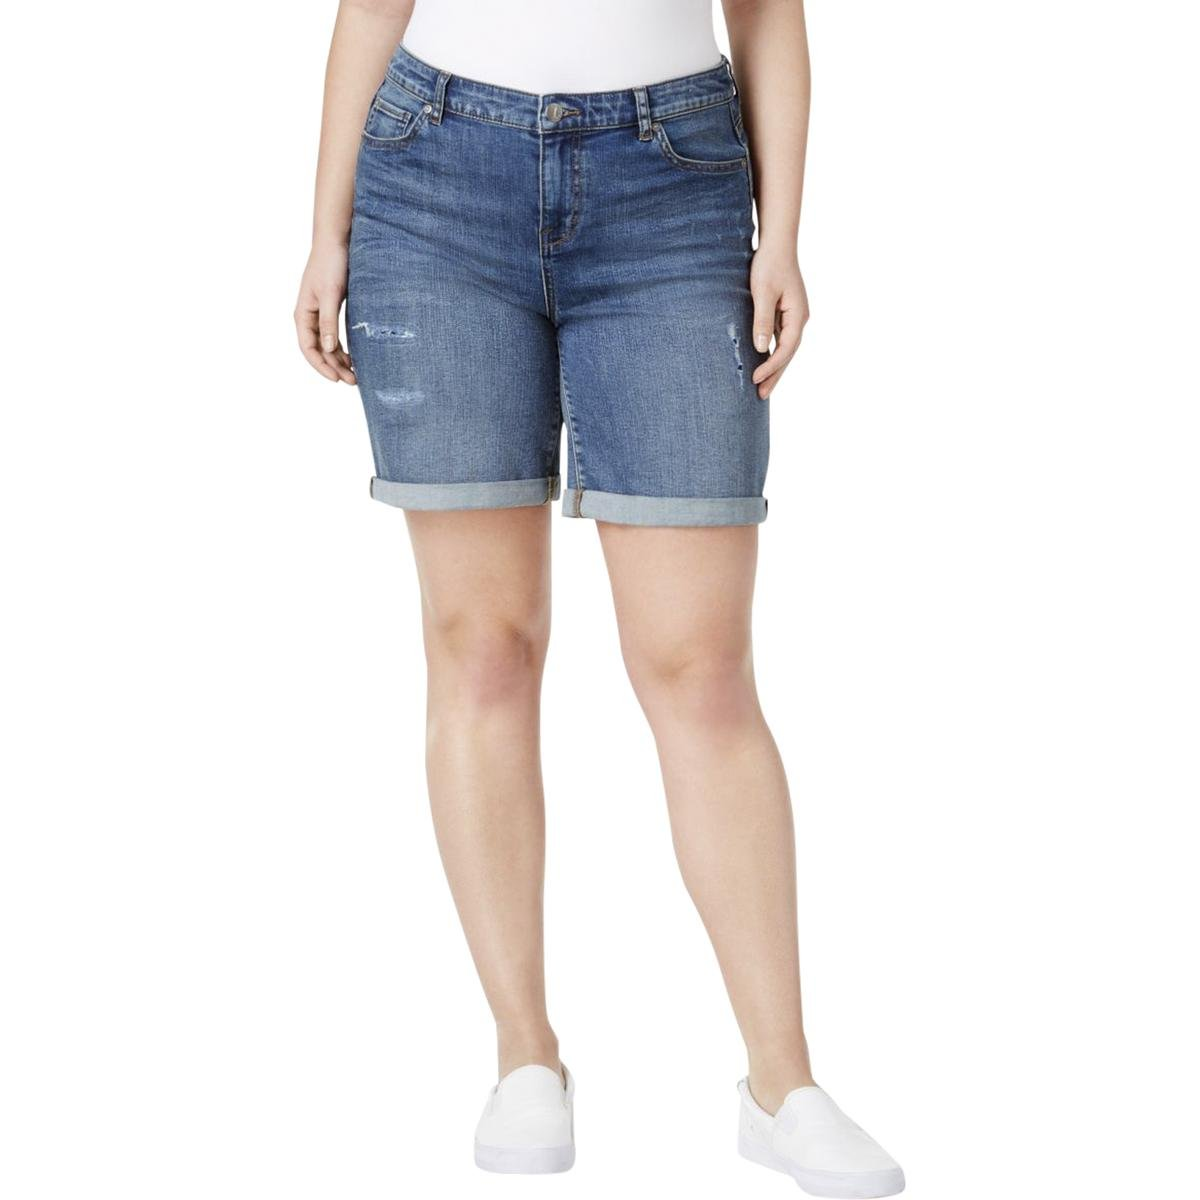 32ccecc445 Womens Plus Mid-Rise Distressed Denim Shorts Blue 14W at Amazon Women's  Clothing store: